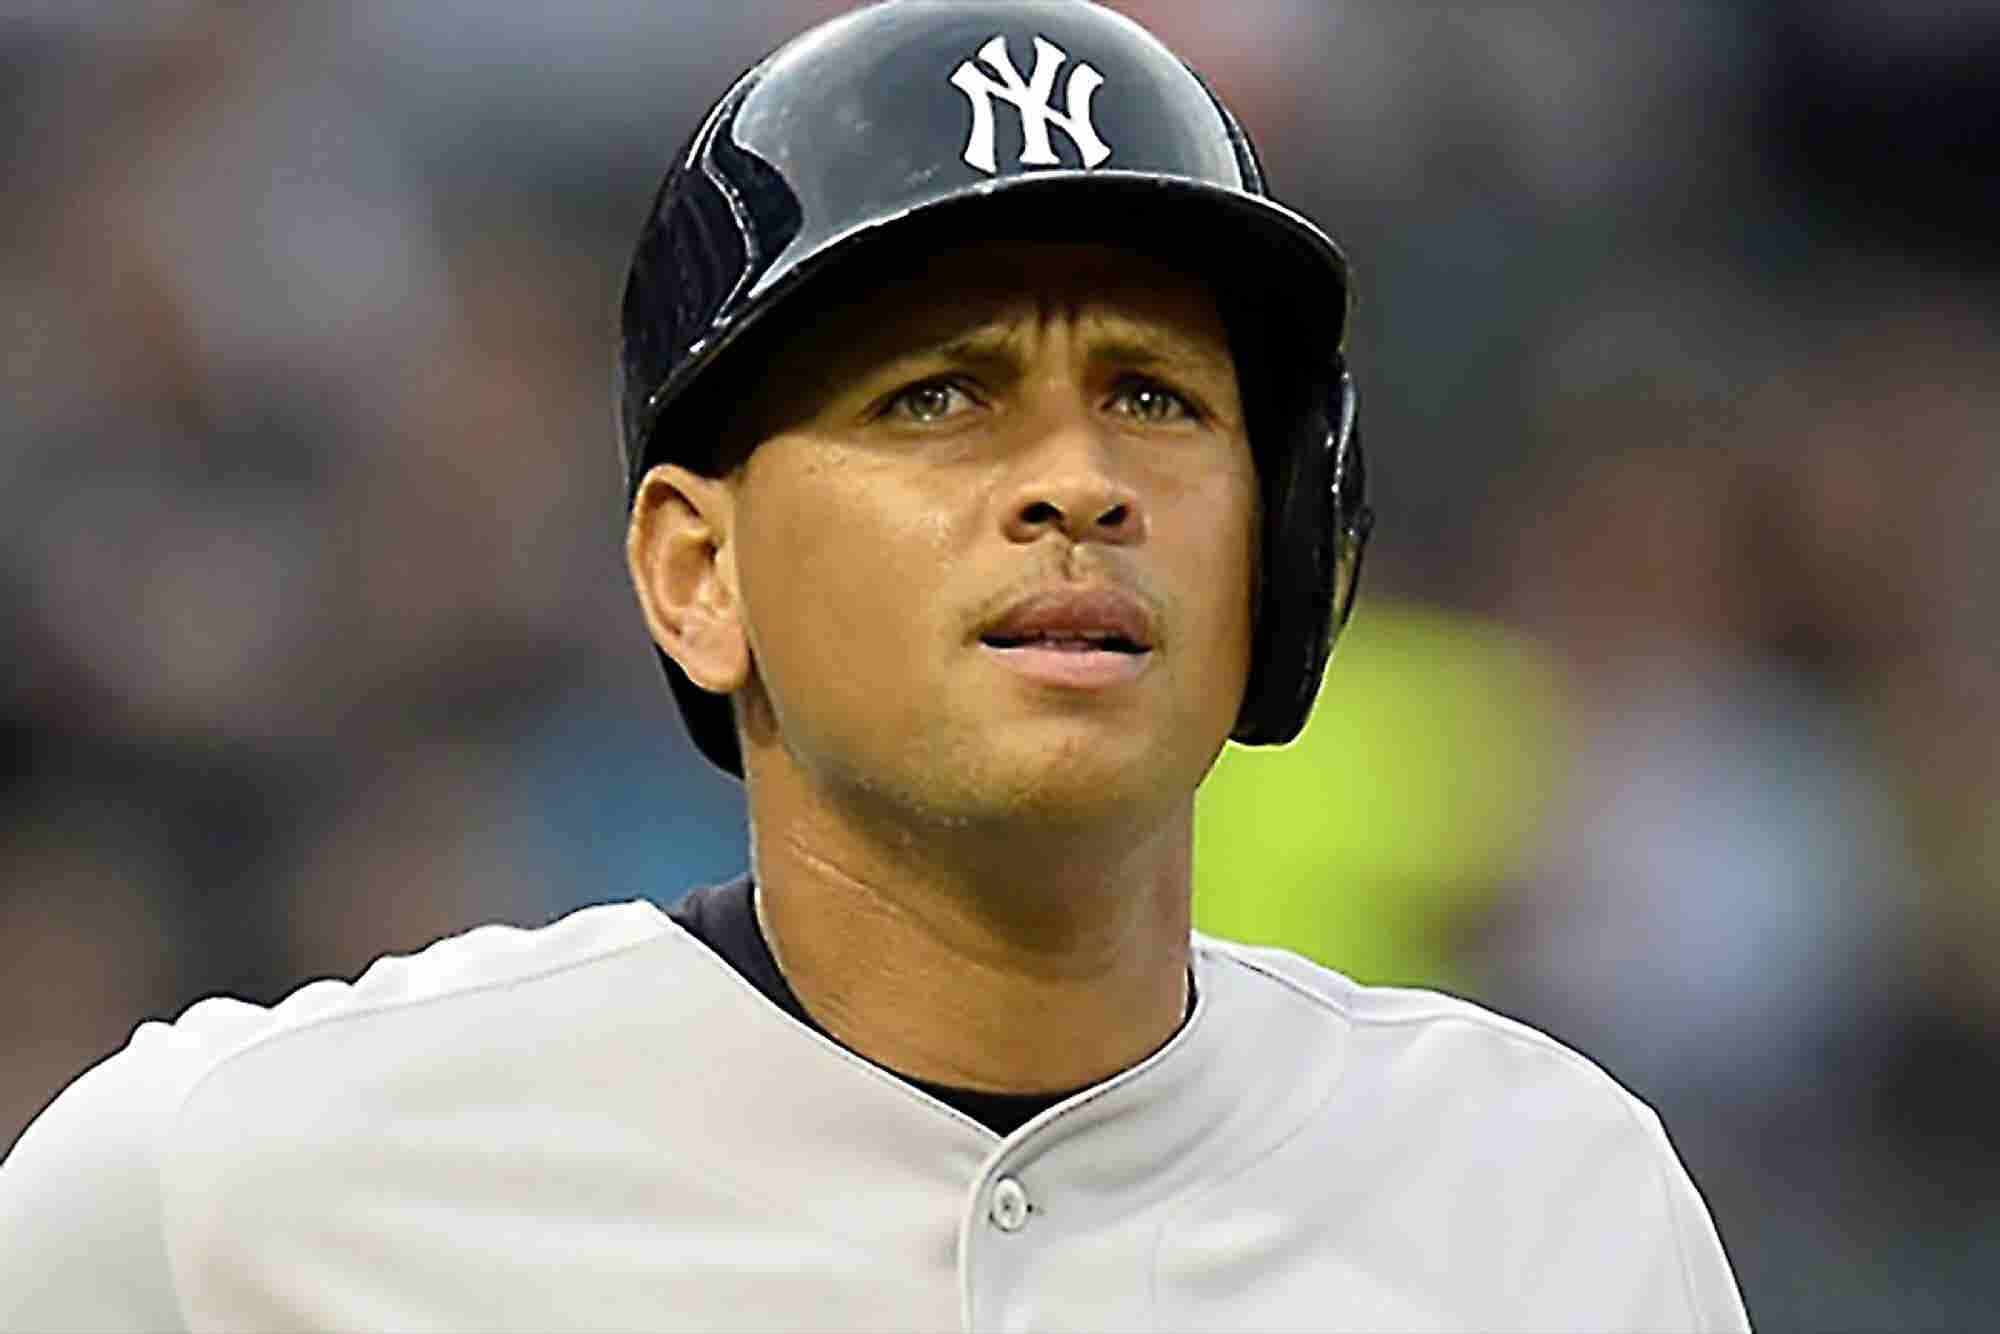 A-Rod Drama: 3 Tips for Managing Difficult Employees